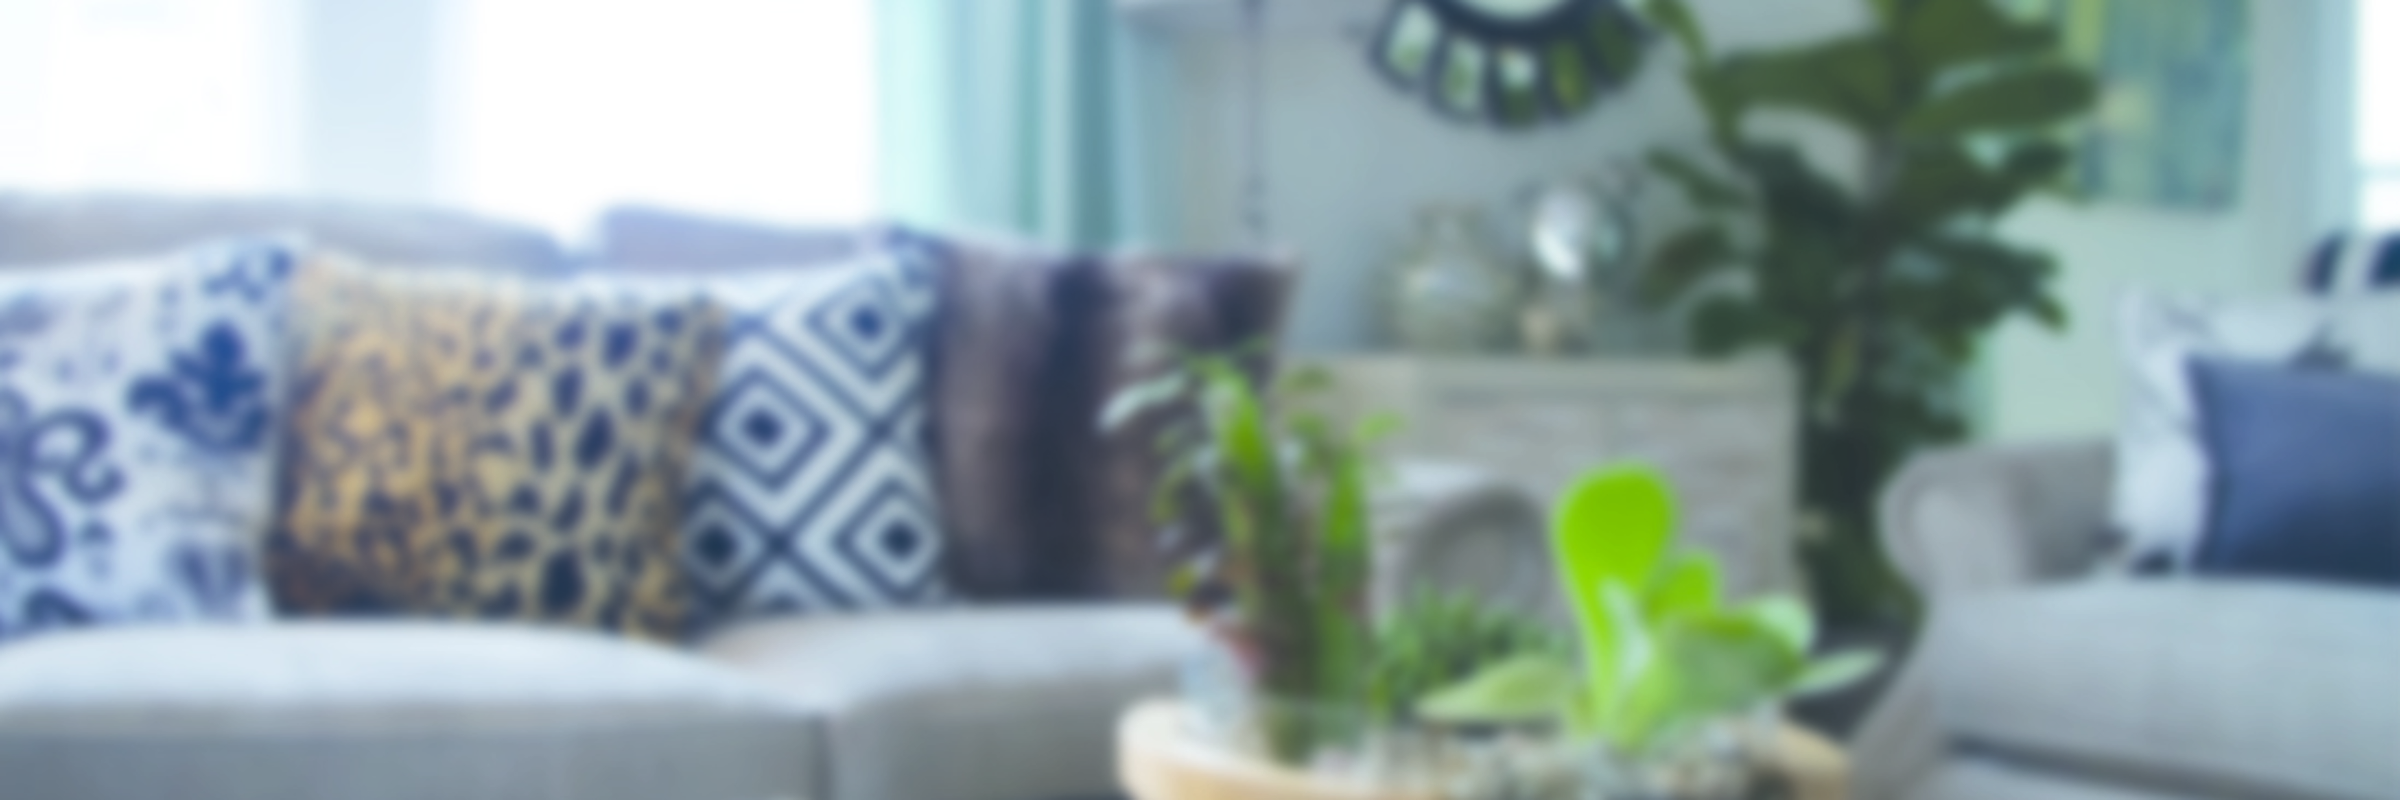 Blurred Living Room